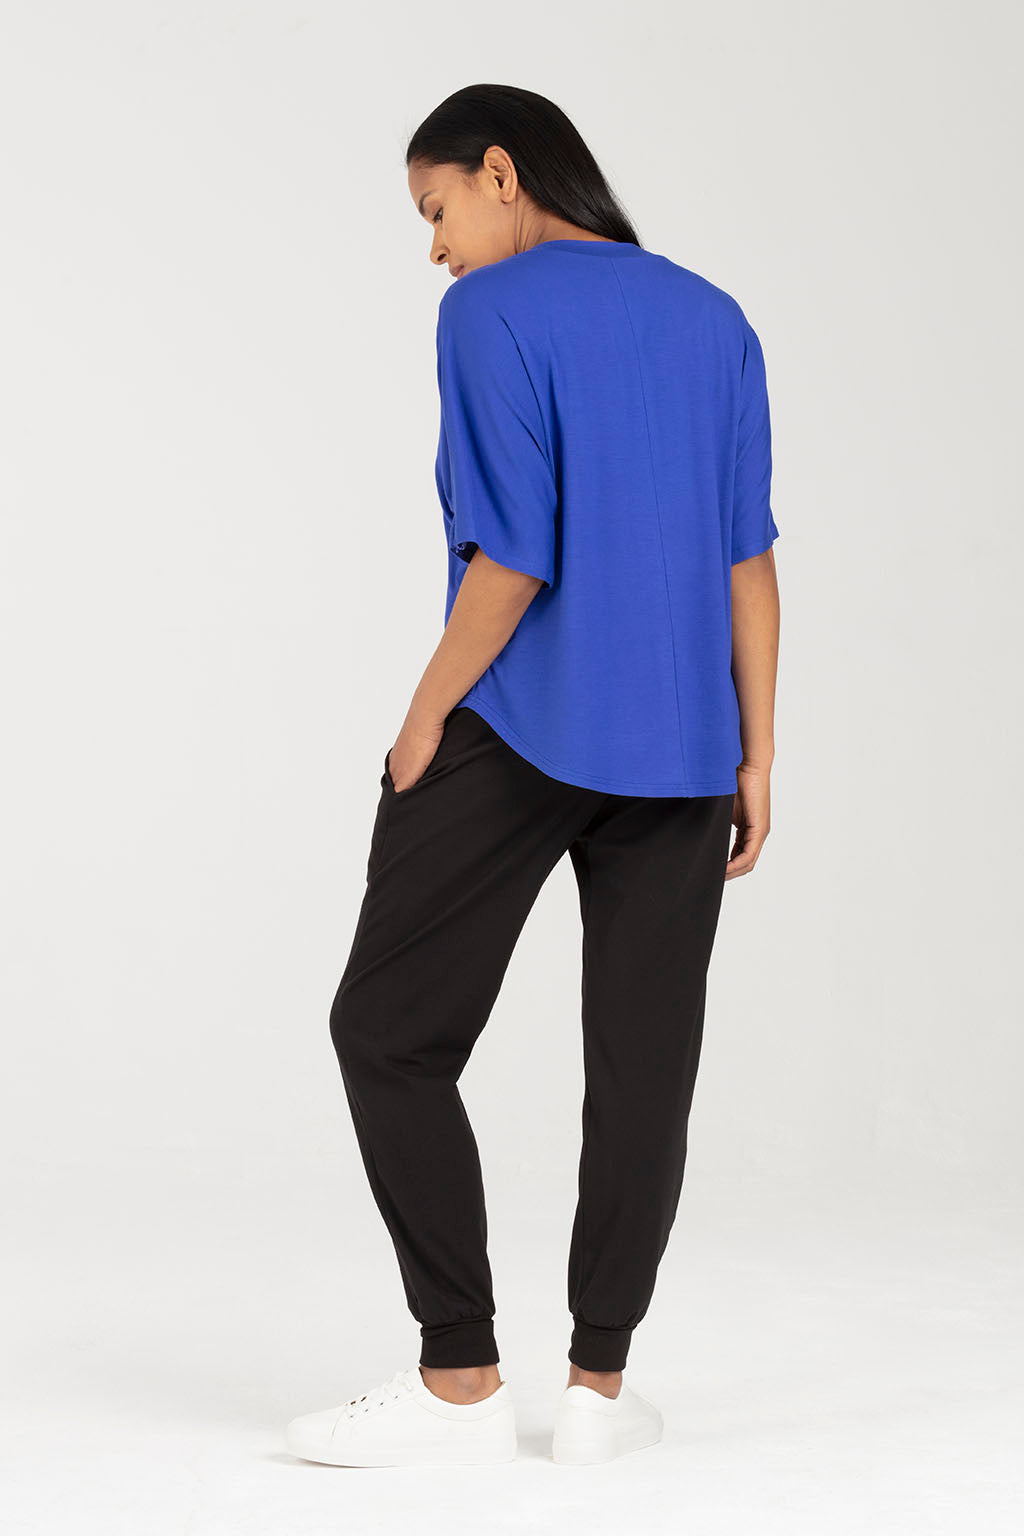 Blue Soft Nursing Top, Easy Breastfeeding Access - Minerva by Sarka London - Back View